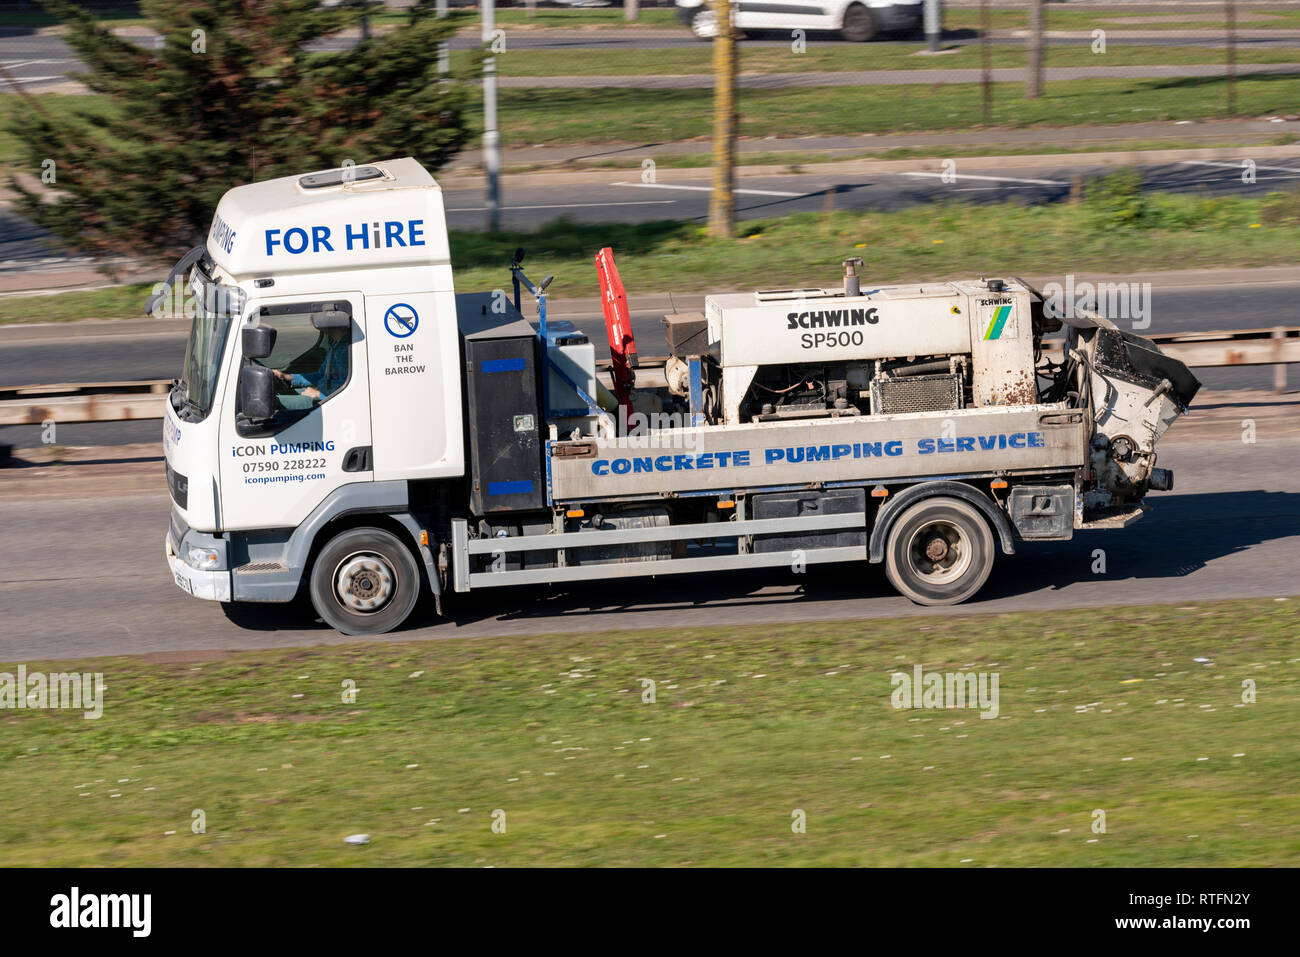 Icon Pumping concrete pumping service for hire  Schwing SP500 pump